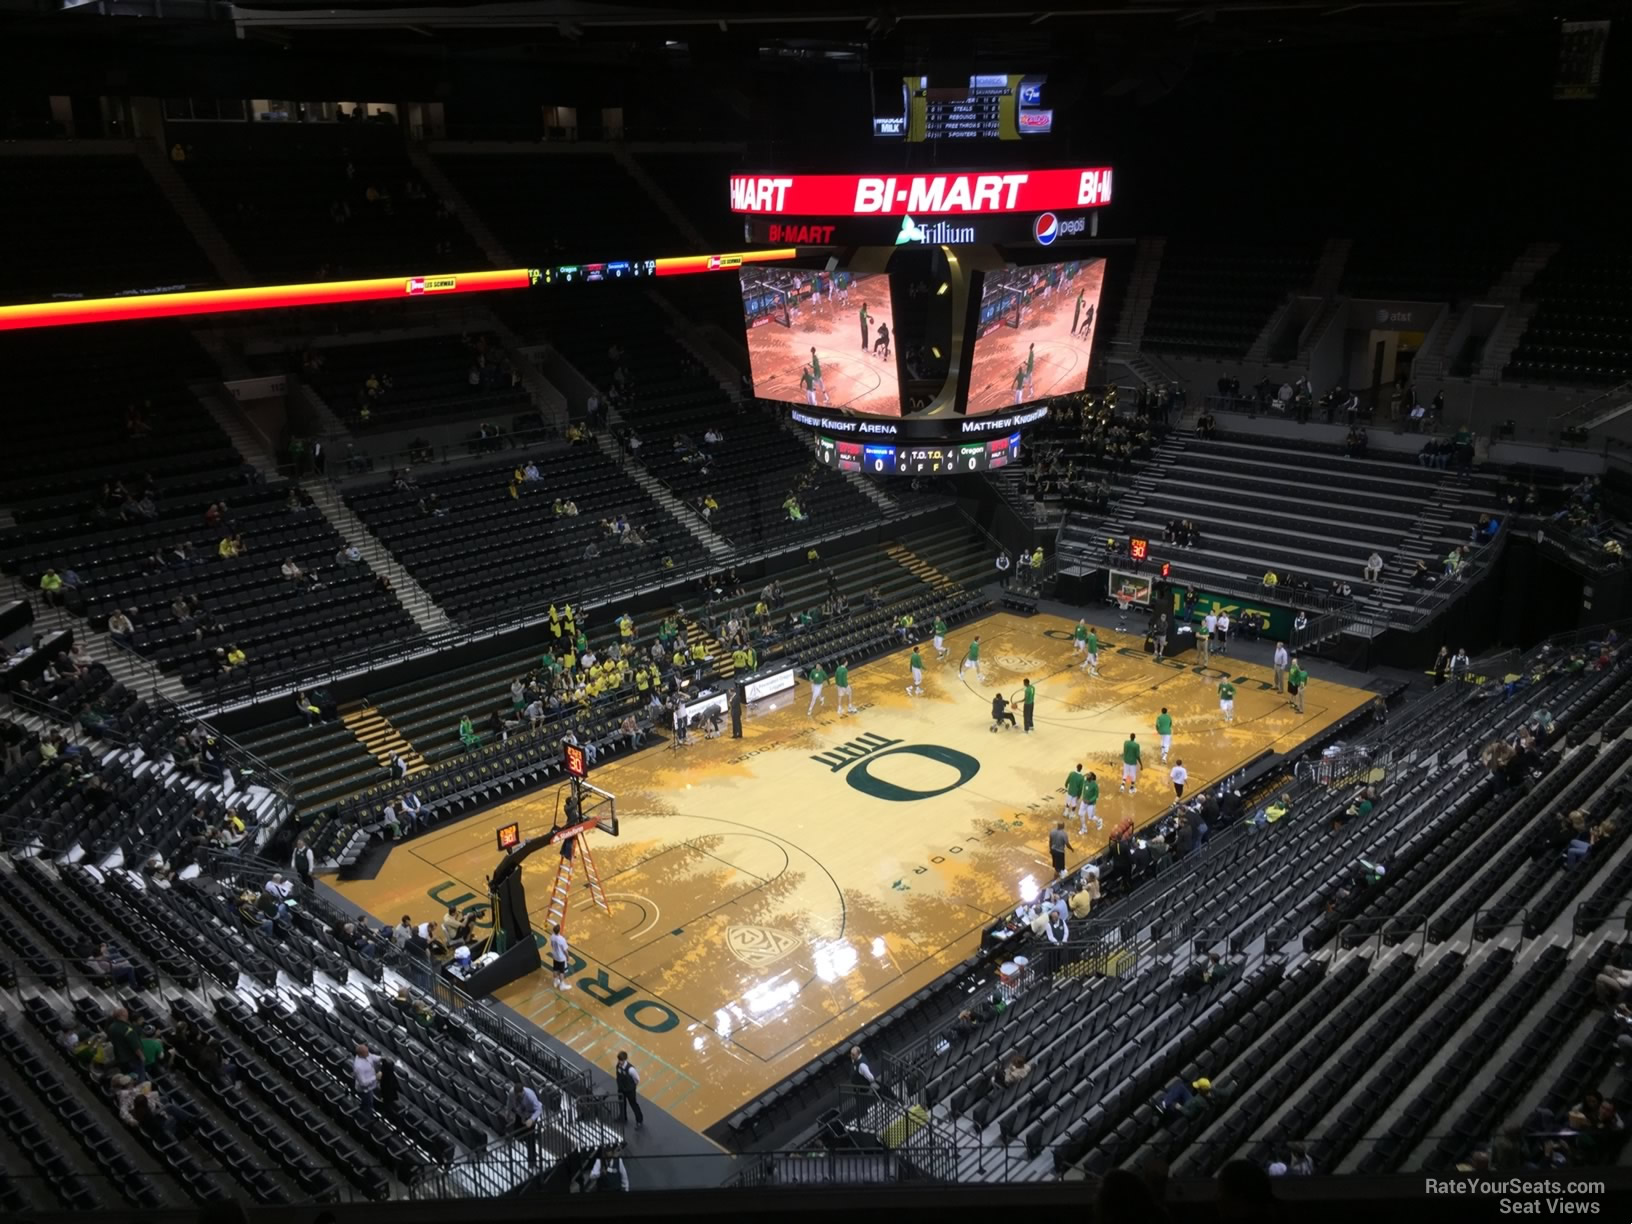 Matthew Knight Arena Section 206 Rateyourseats Com